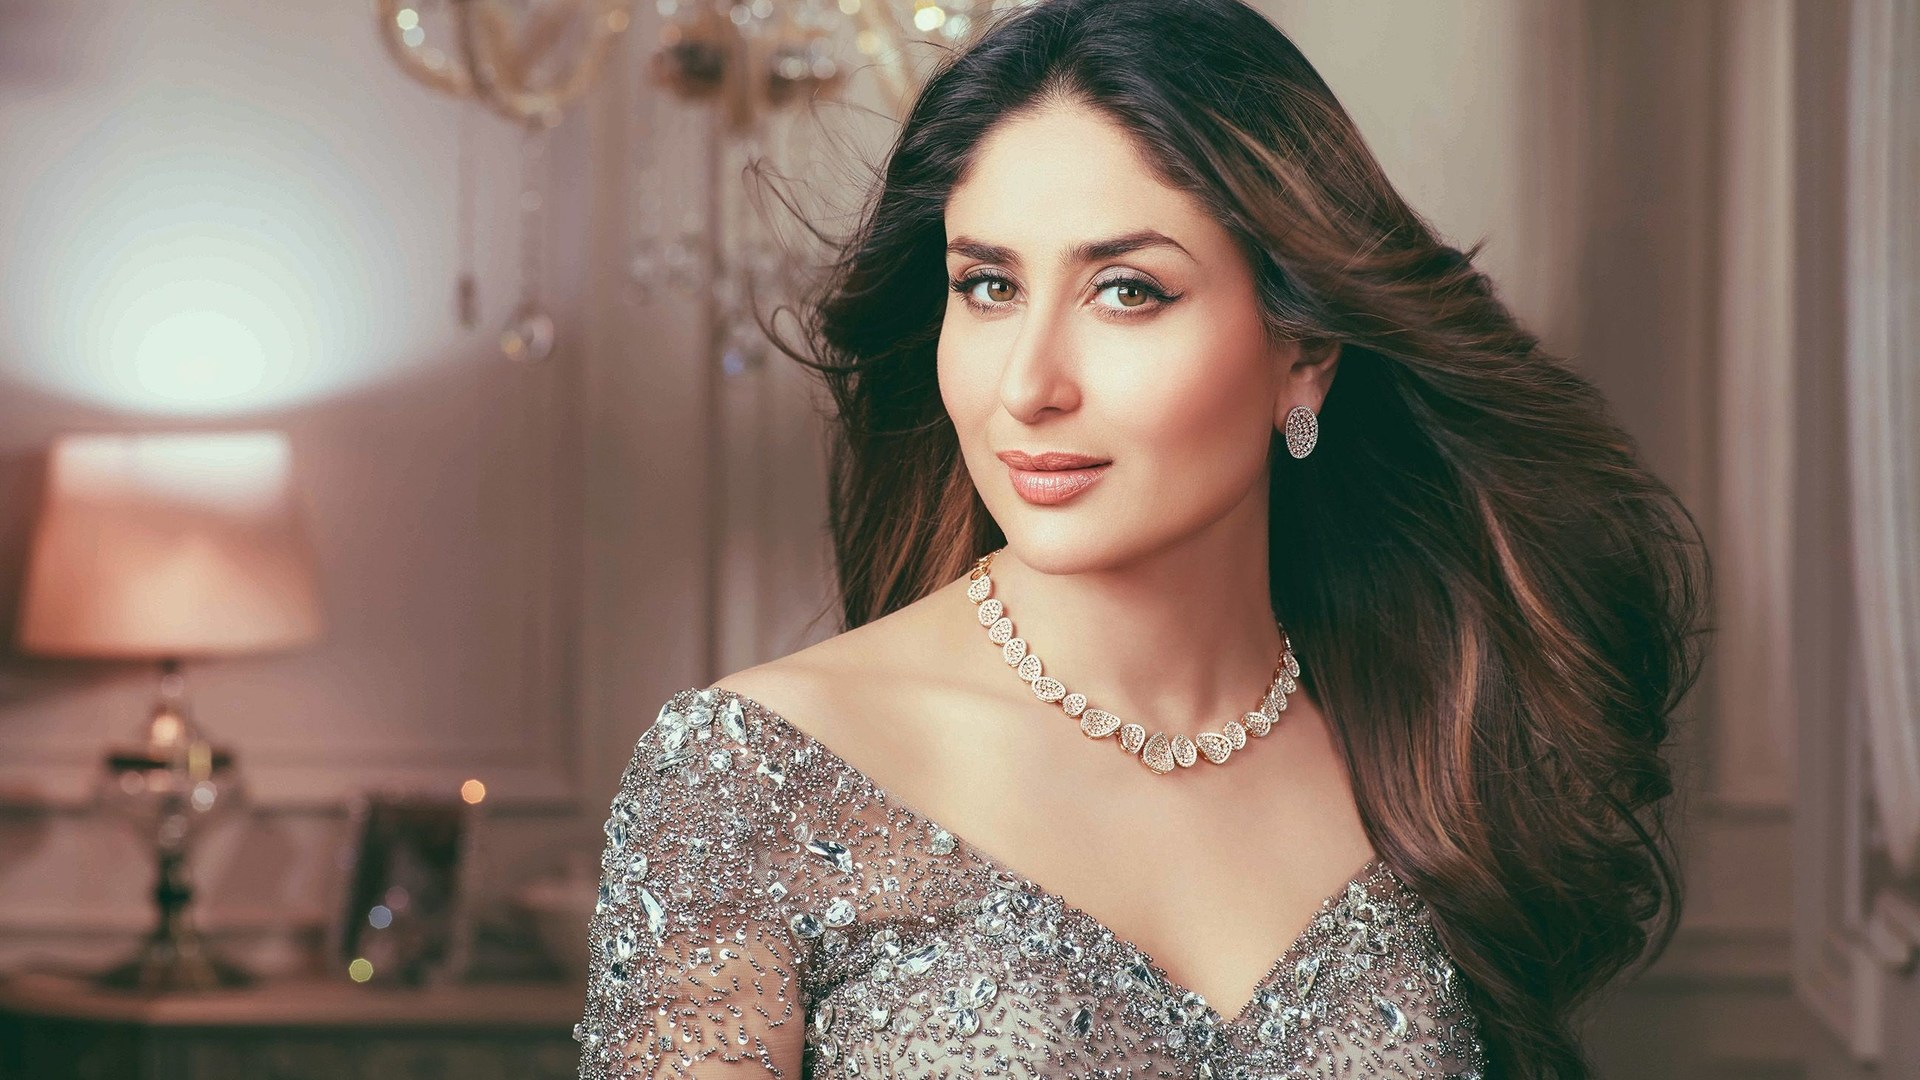 Kareena Kapoor Khan Biography – Age, Height, Movies, Net worth & More